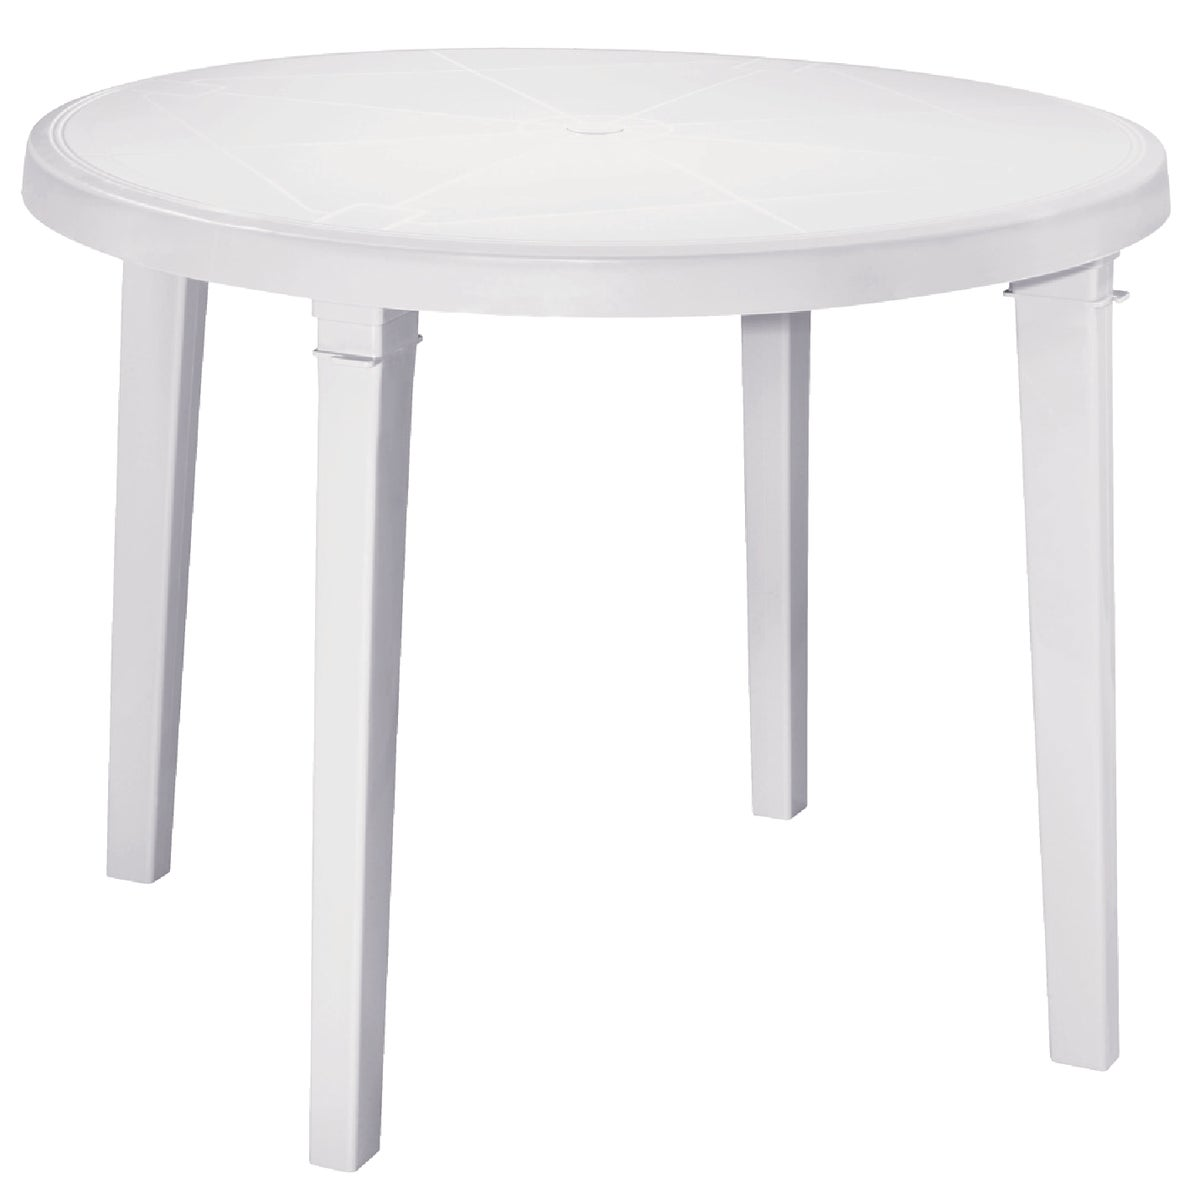 "WHT 38"" RND TABLE - 8150-48-3770 by Adams Mfg Patio Furn"